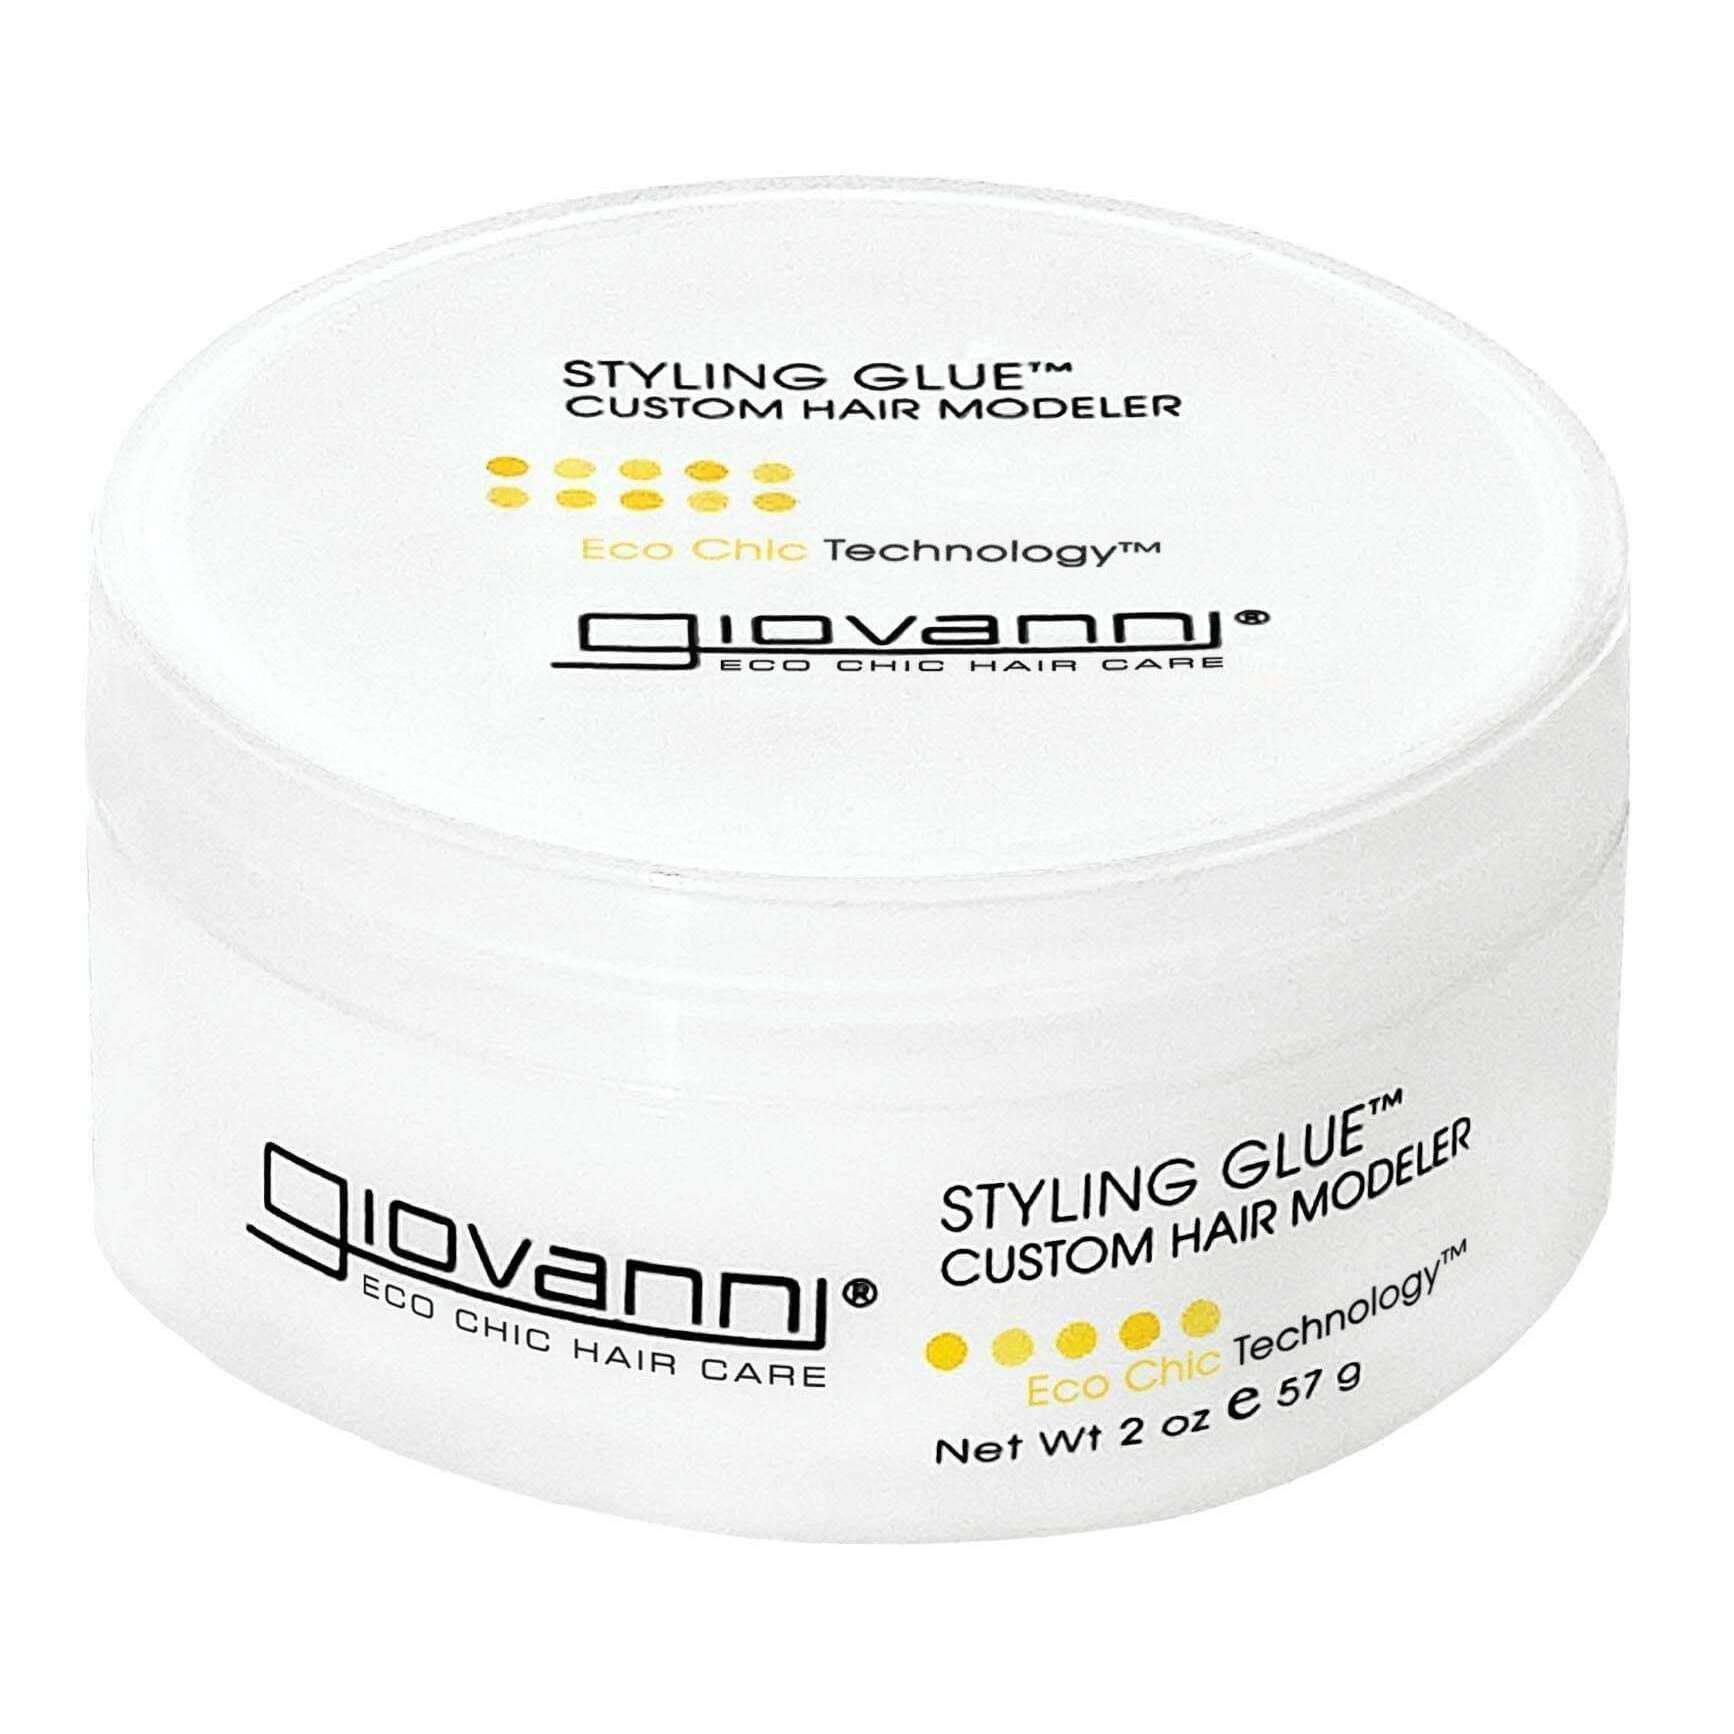 Giovanni Styling Glue Custom Hair Modeler